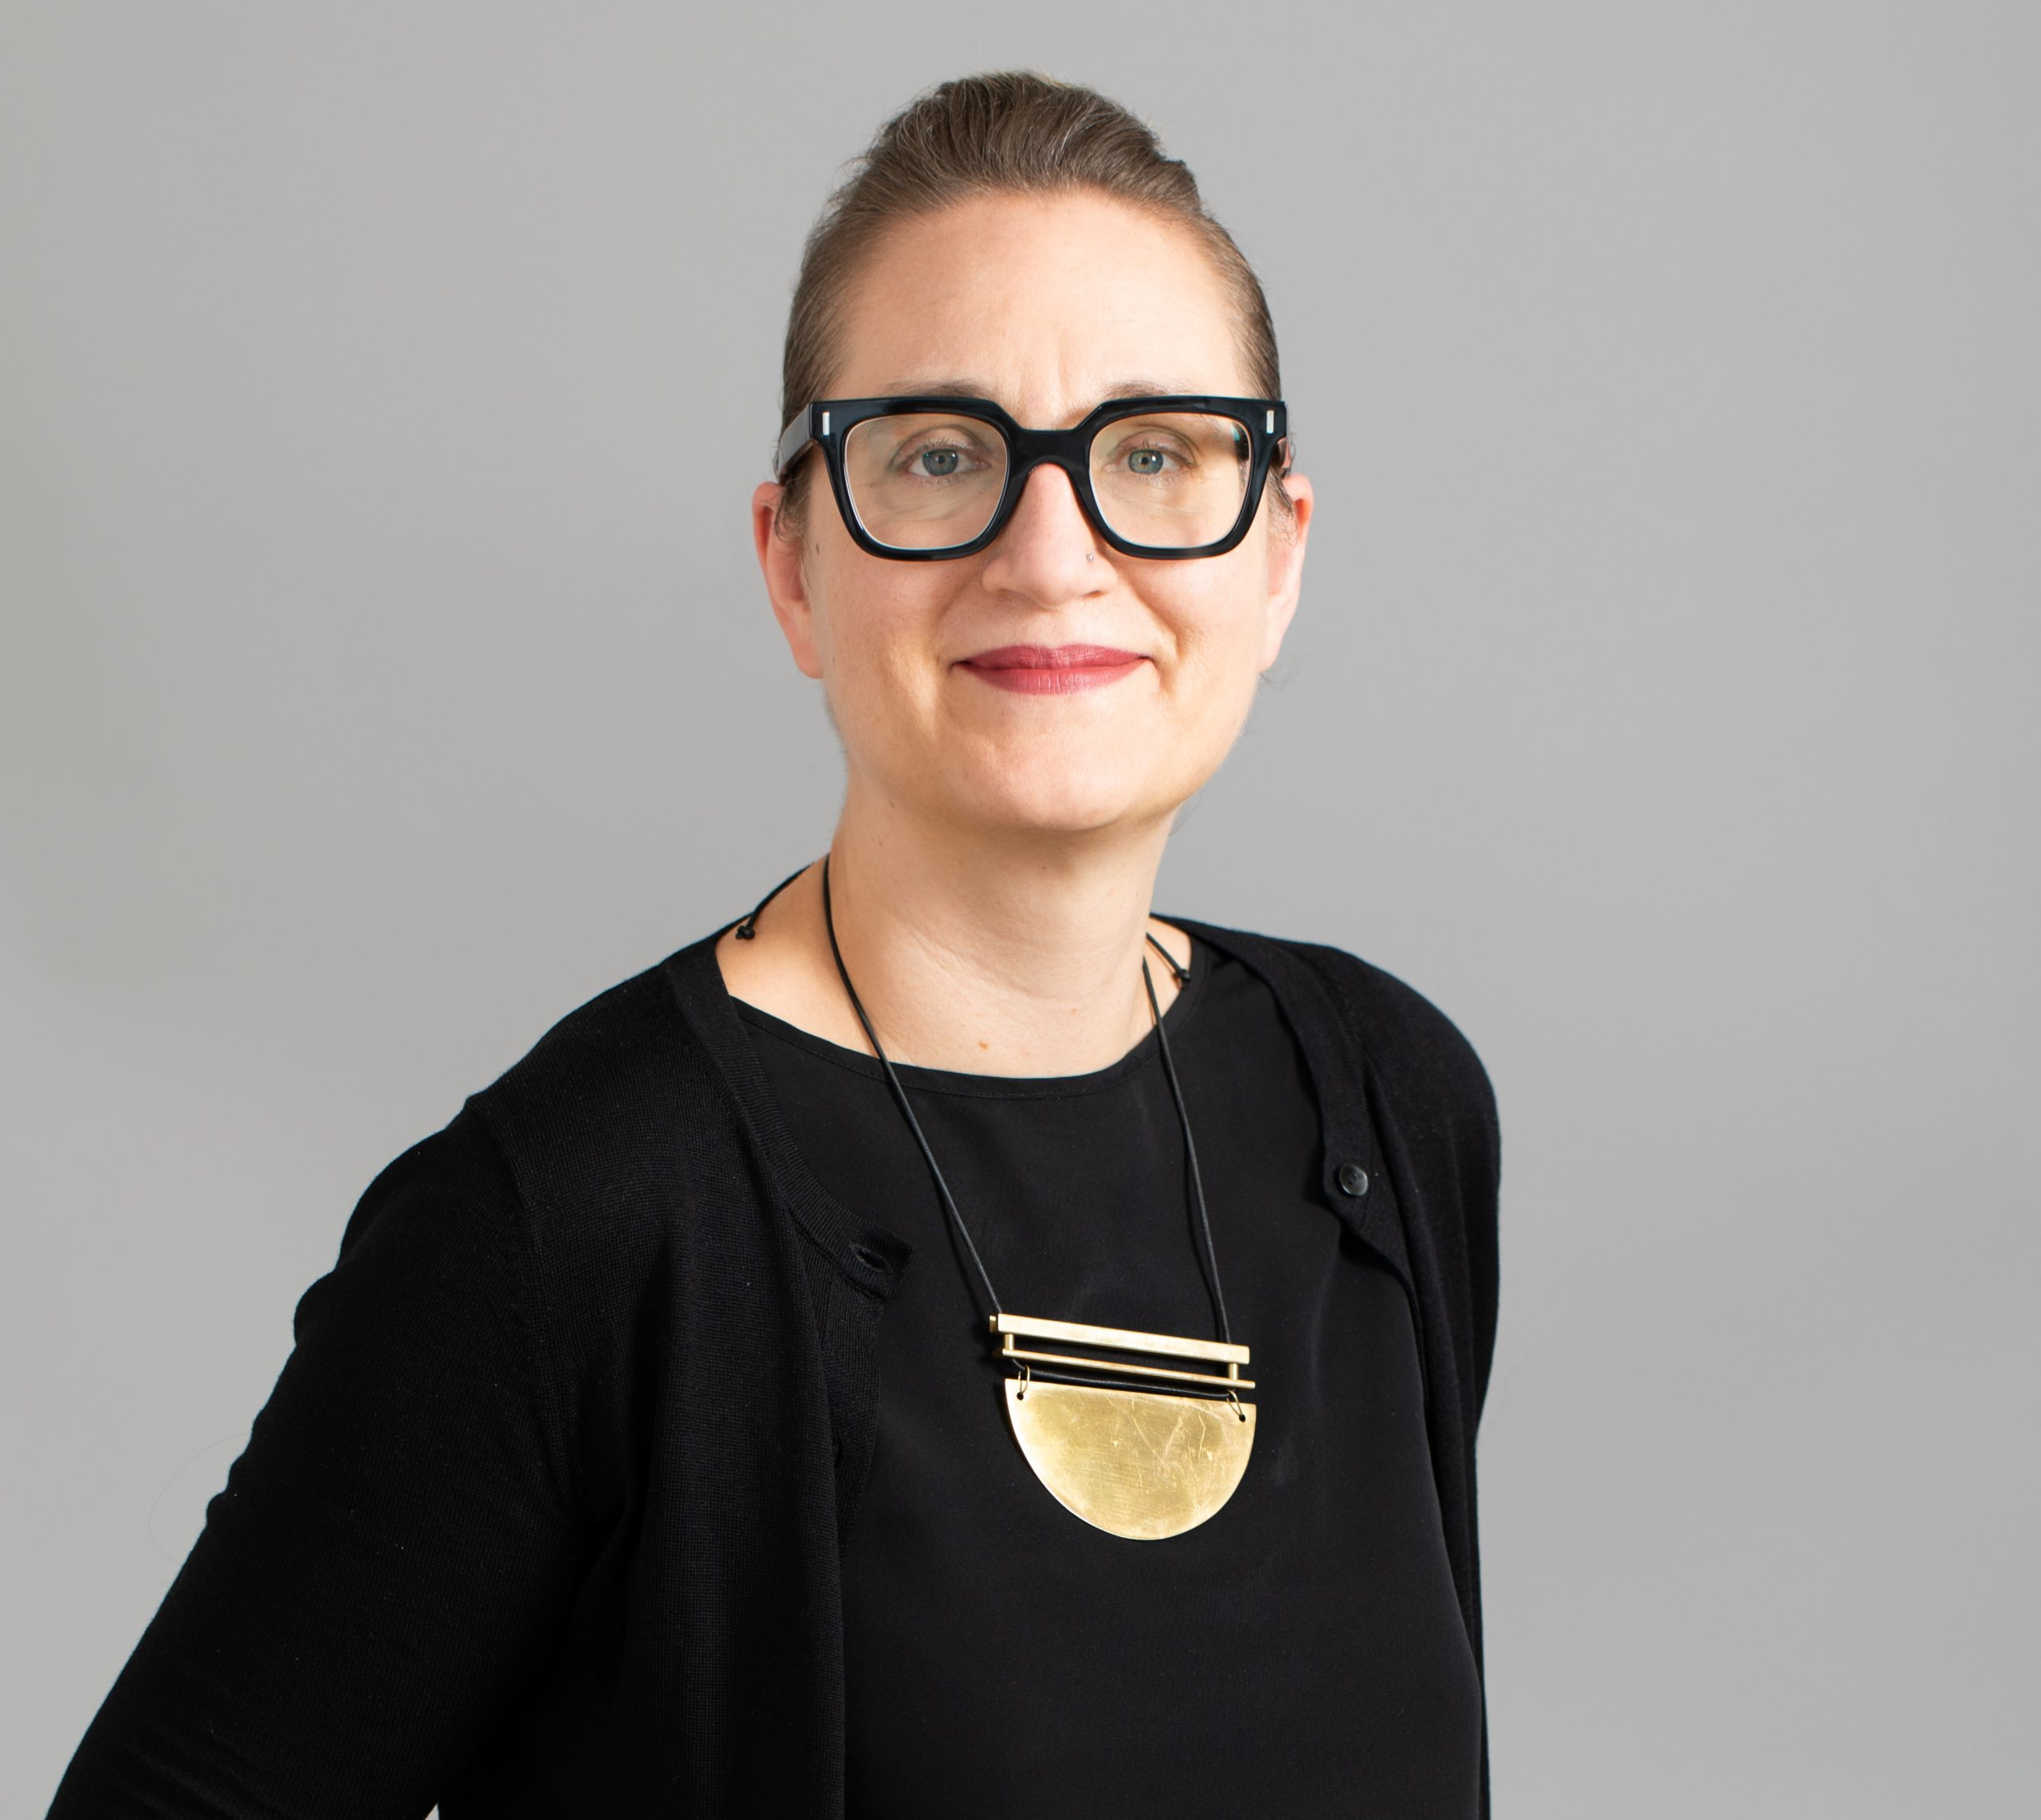 Meet LIV Jury member: Mrs Tina Norden, Partner at Conran and Partners.